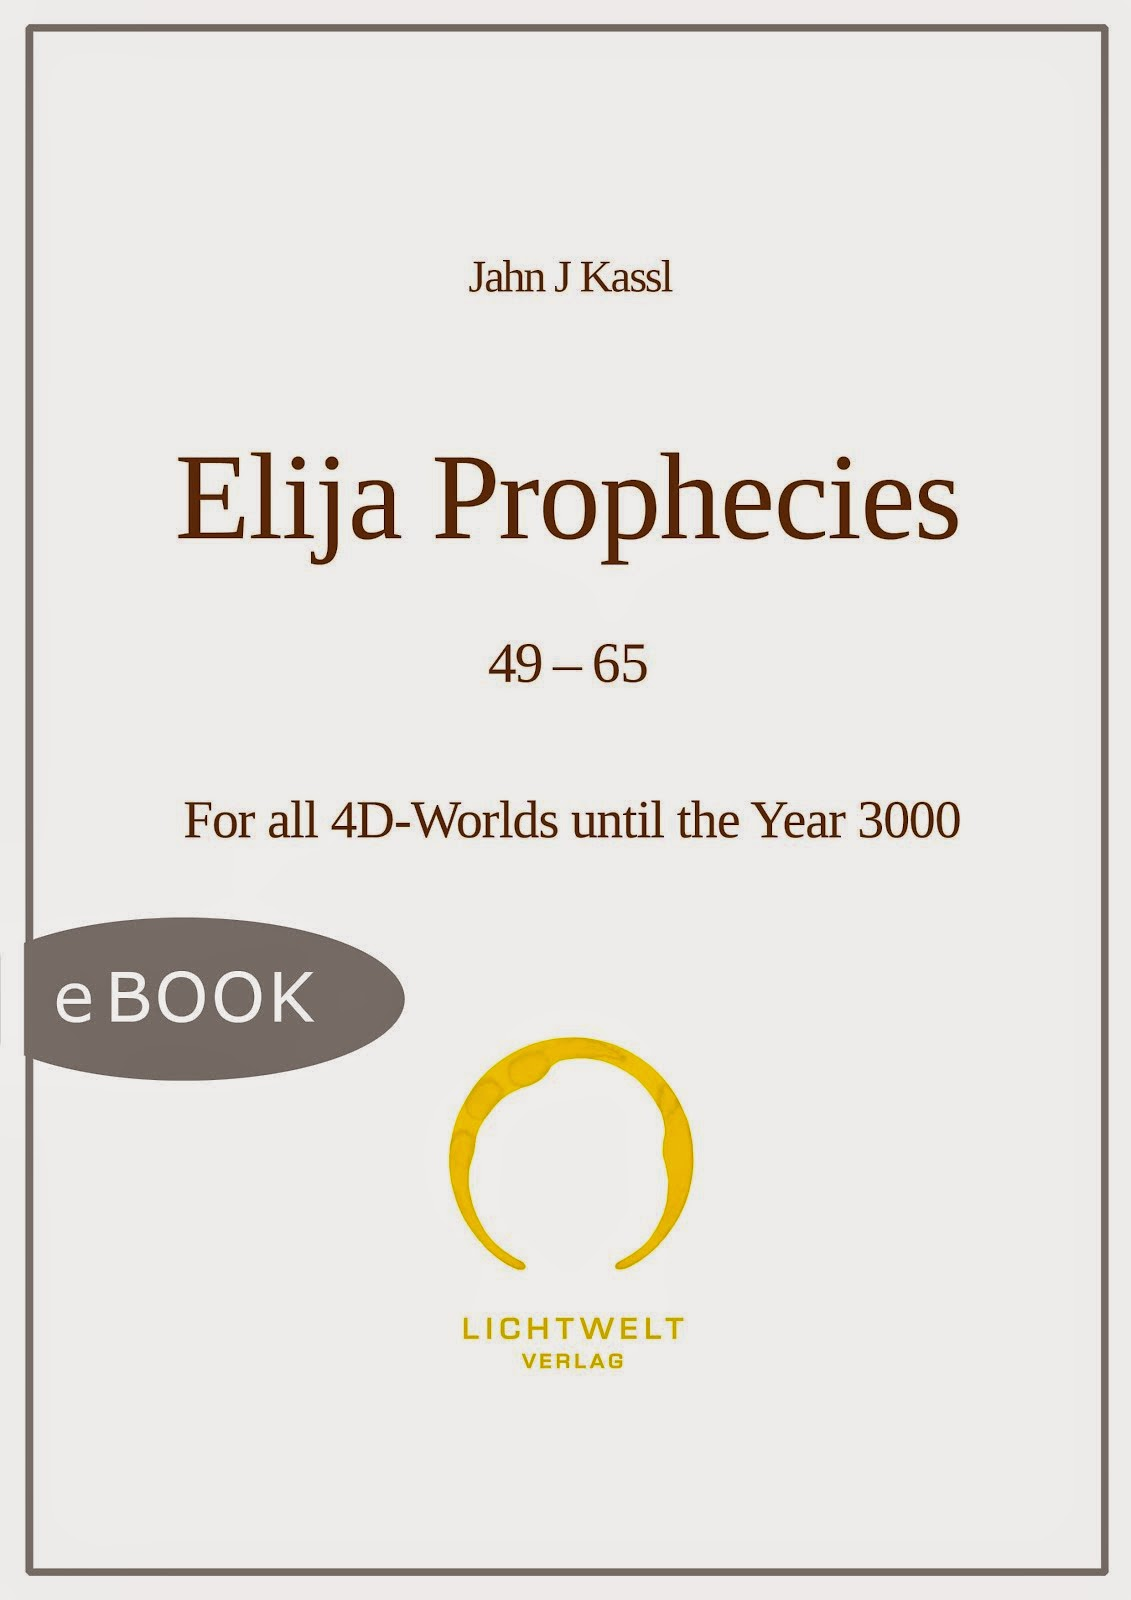 Elija Prophecies 49-65 - JAHN J KASSL (digital publication)